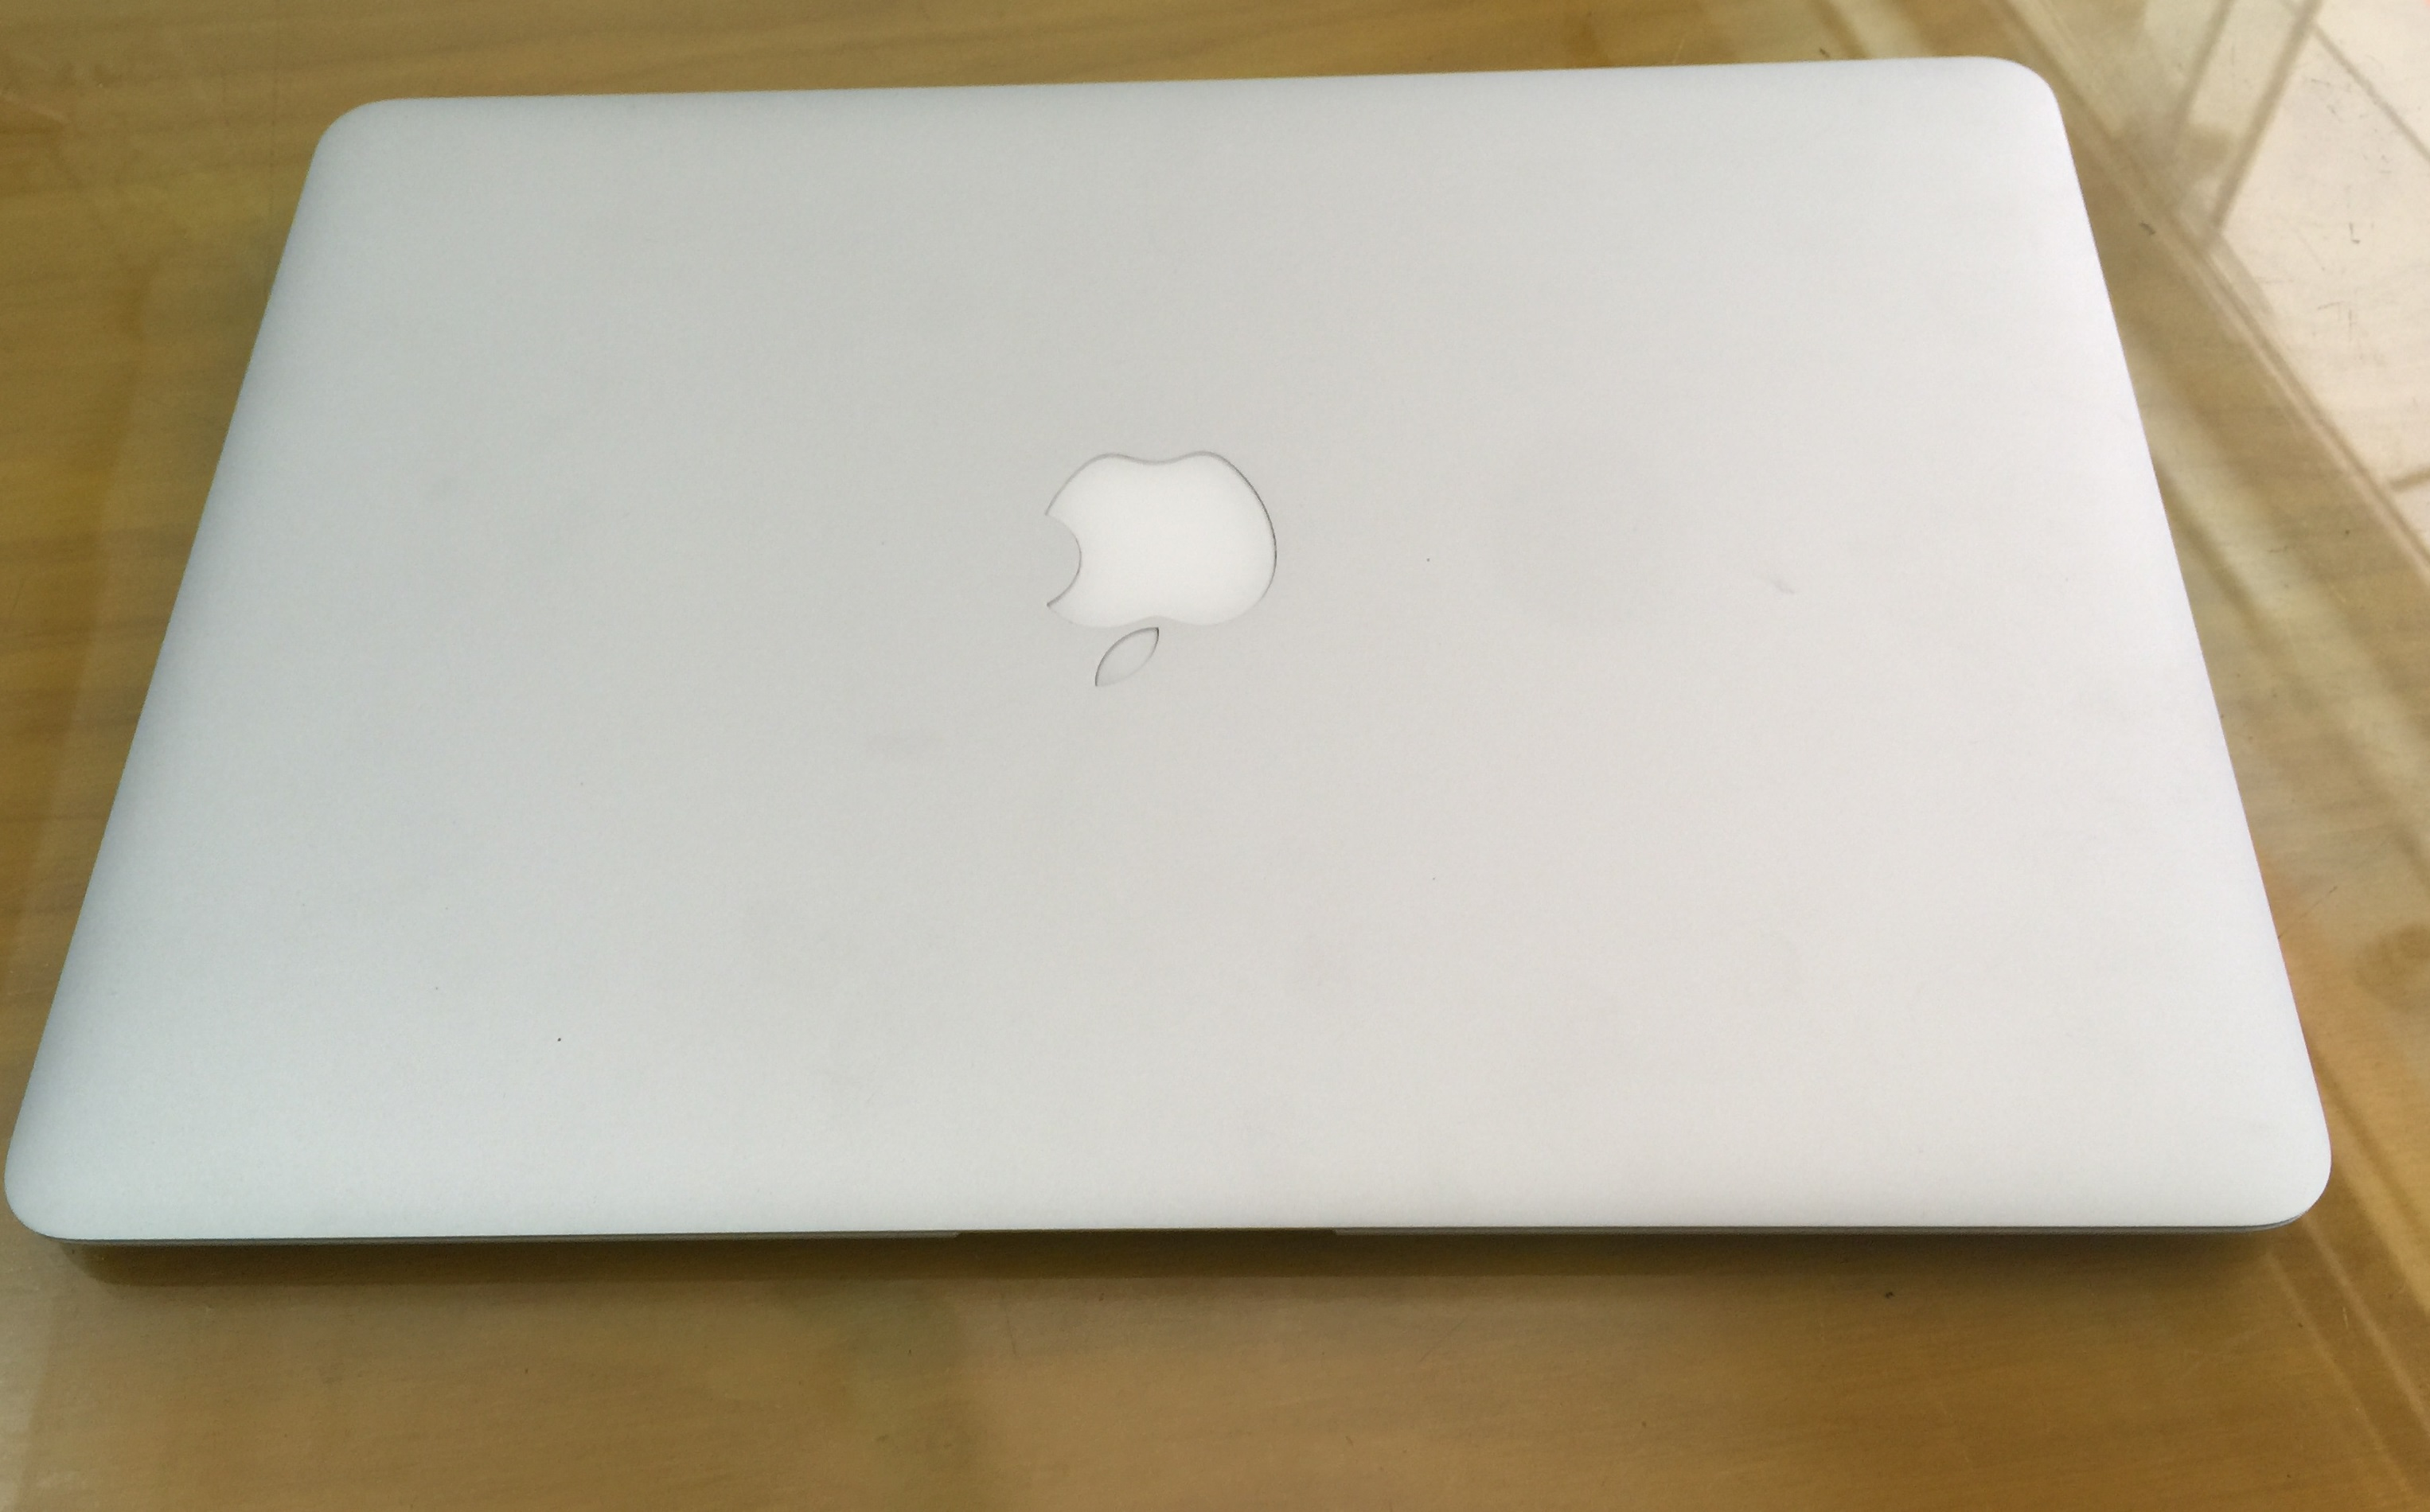 APPLE MMGF2LL-A MACBOOK AIR 2016